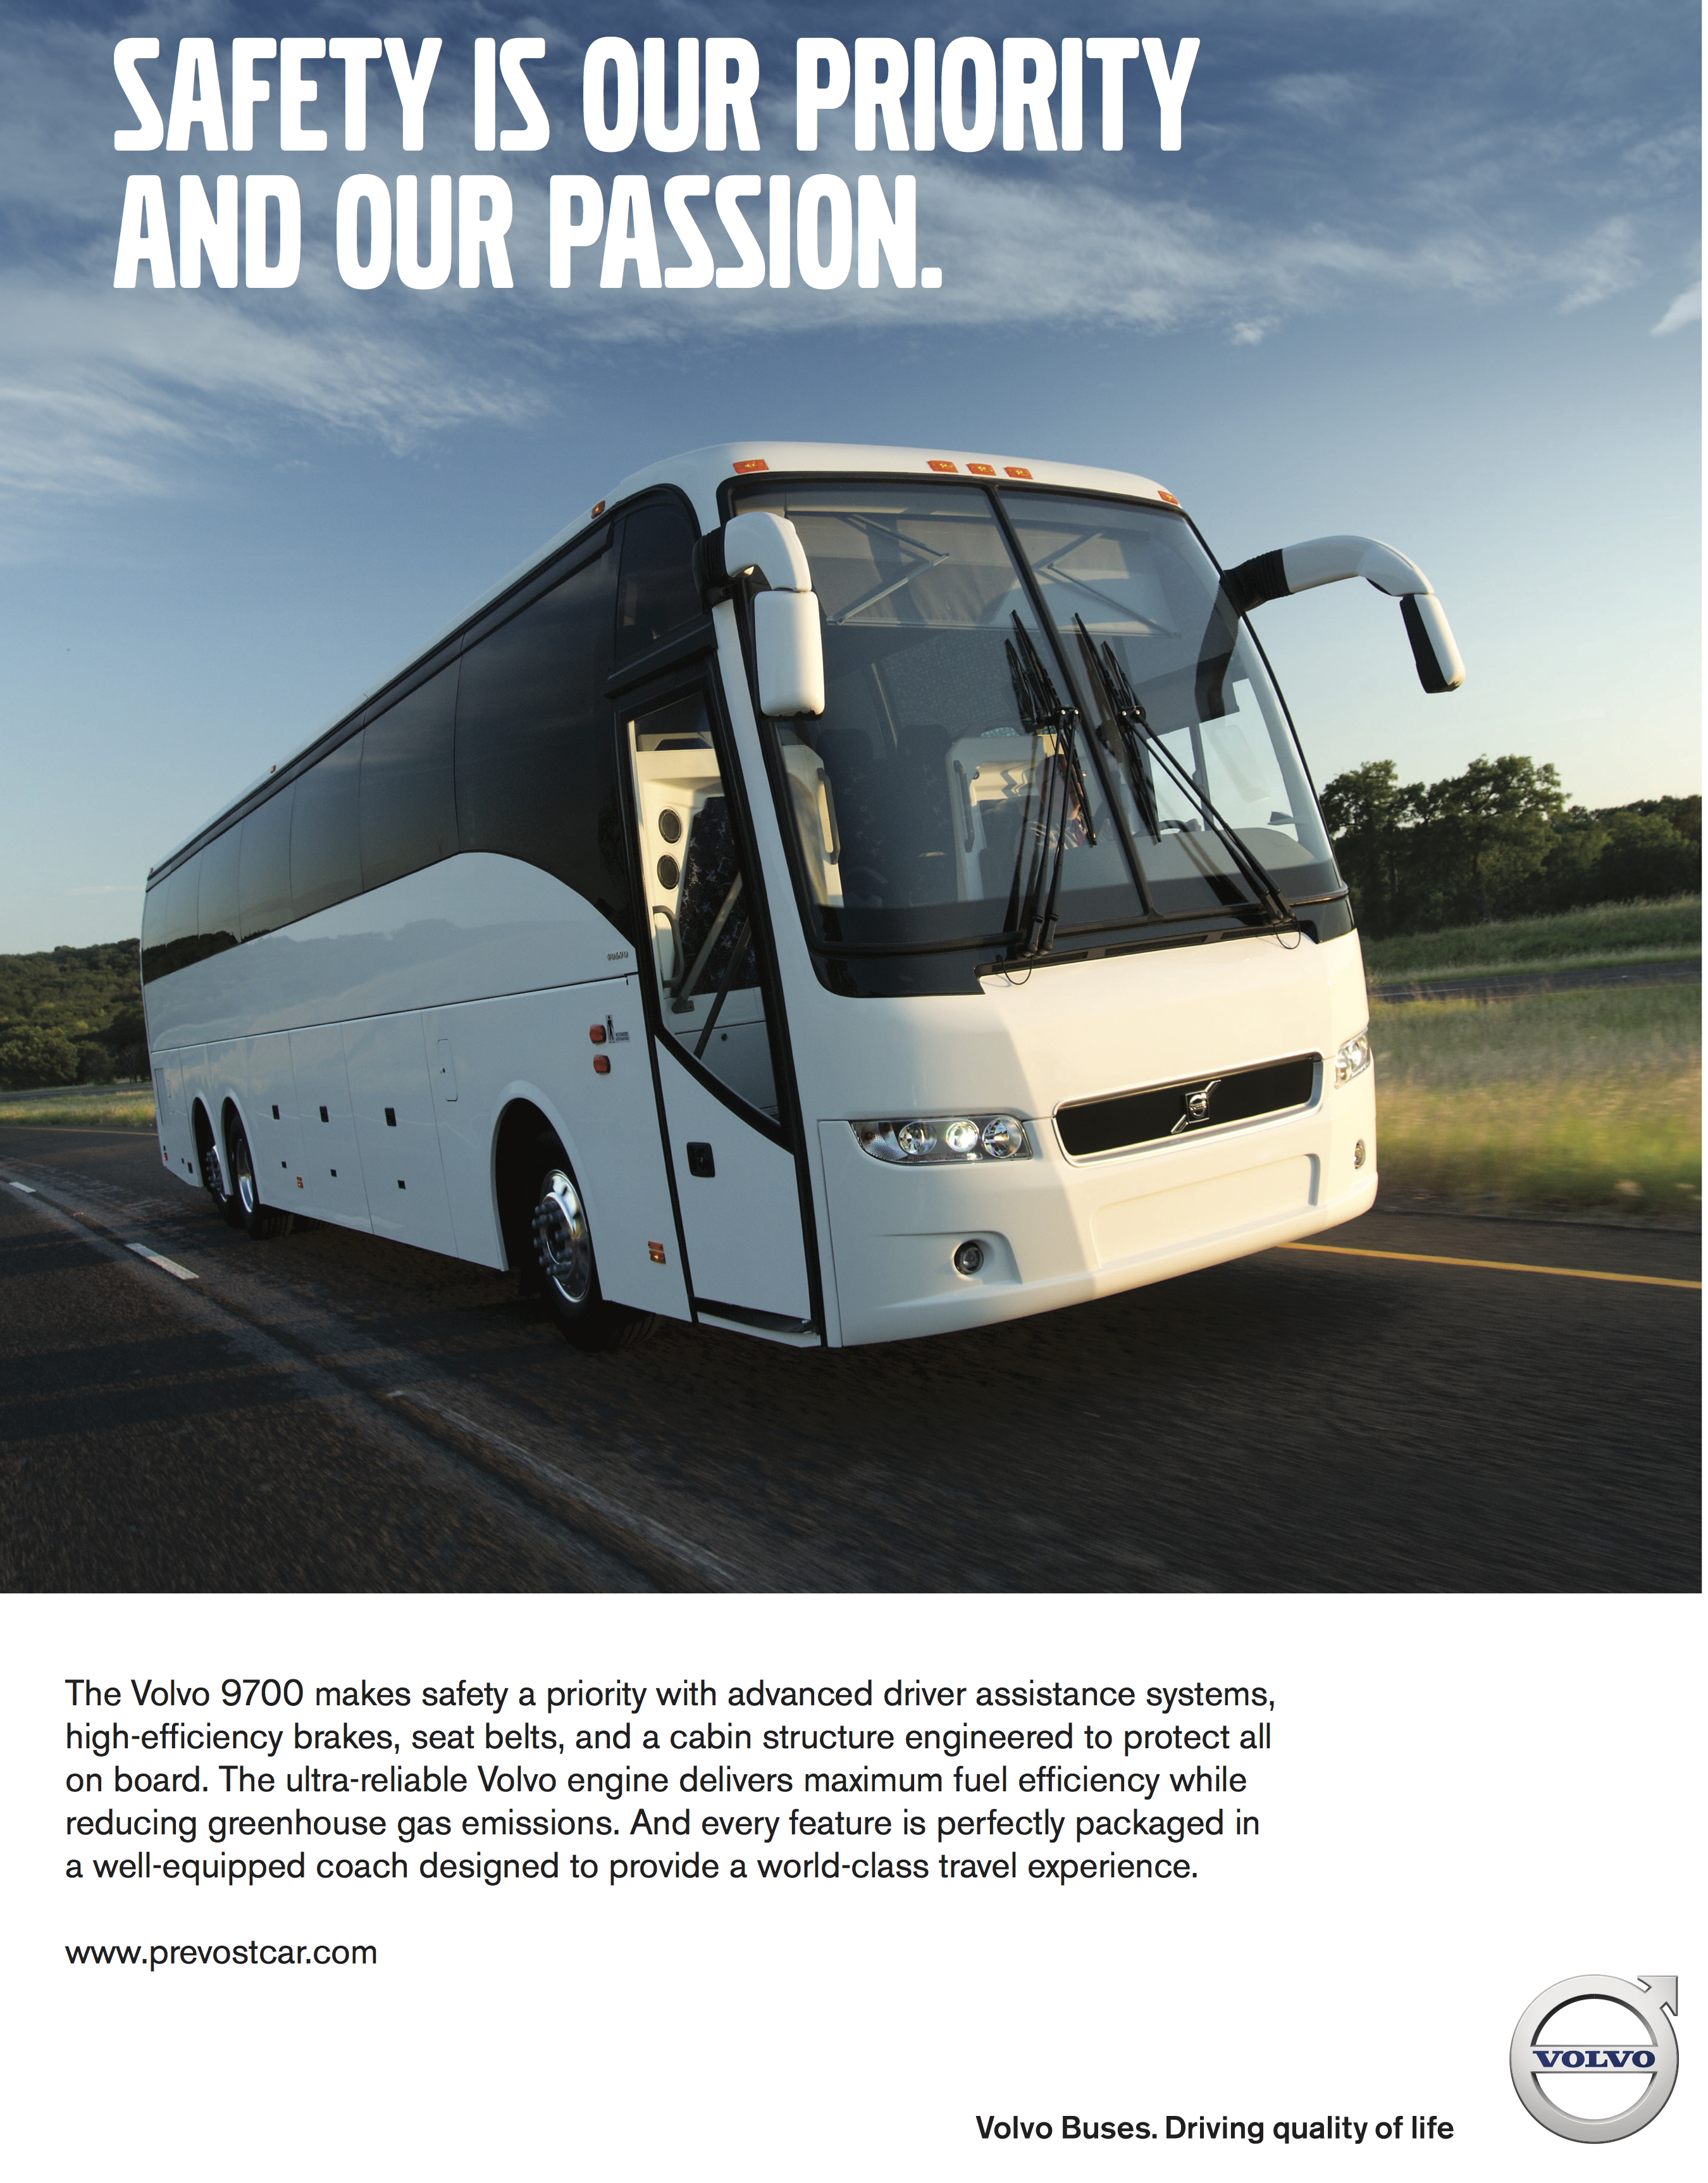 MCI's New J3500 Small in Size, Big in Features